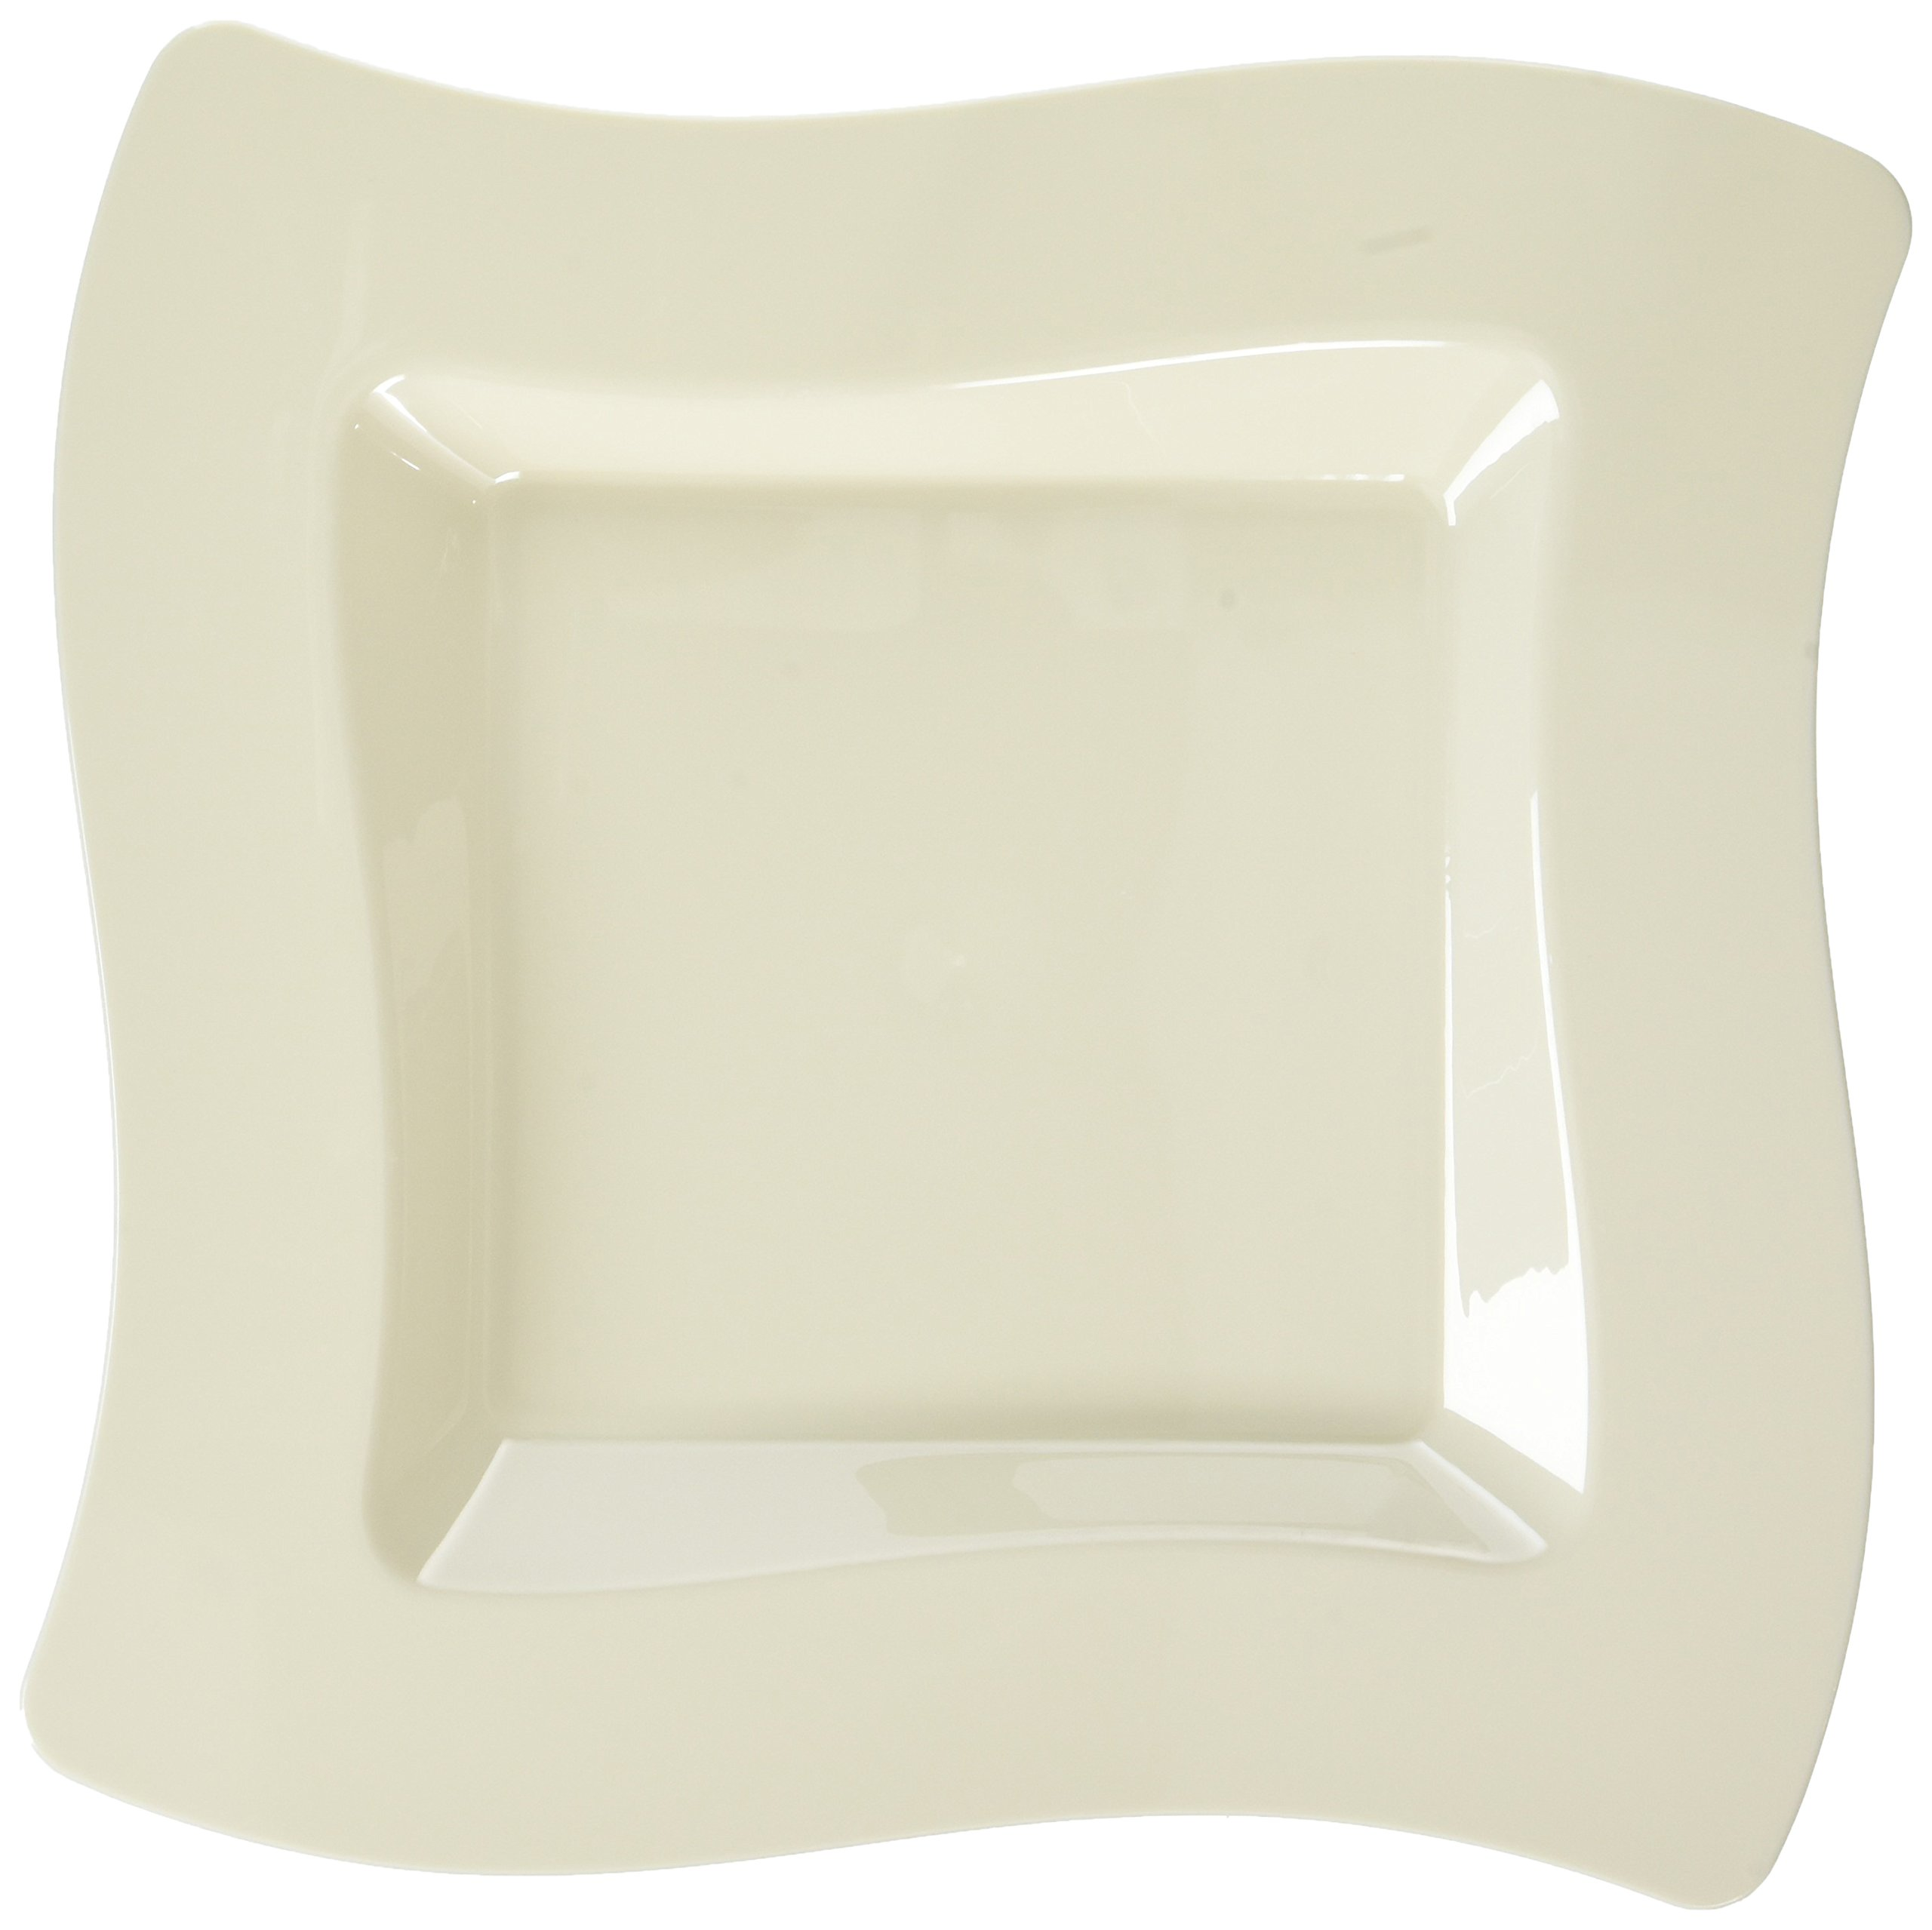 Fineline Settings Wavetrends  Bone Square-Wave China-Like 8'' Plate  120 Pieces by Wavetrends (Image #1)